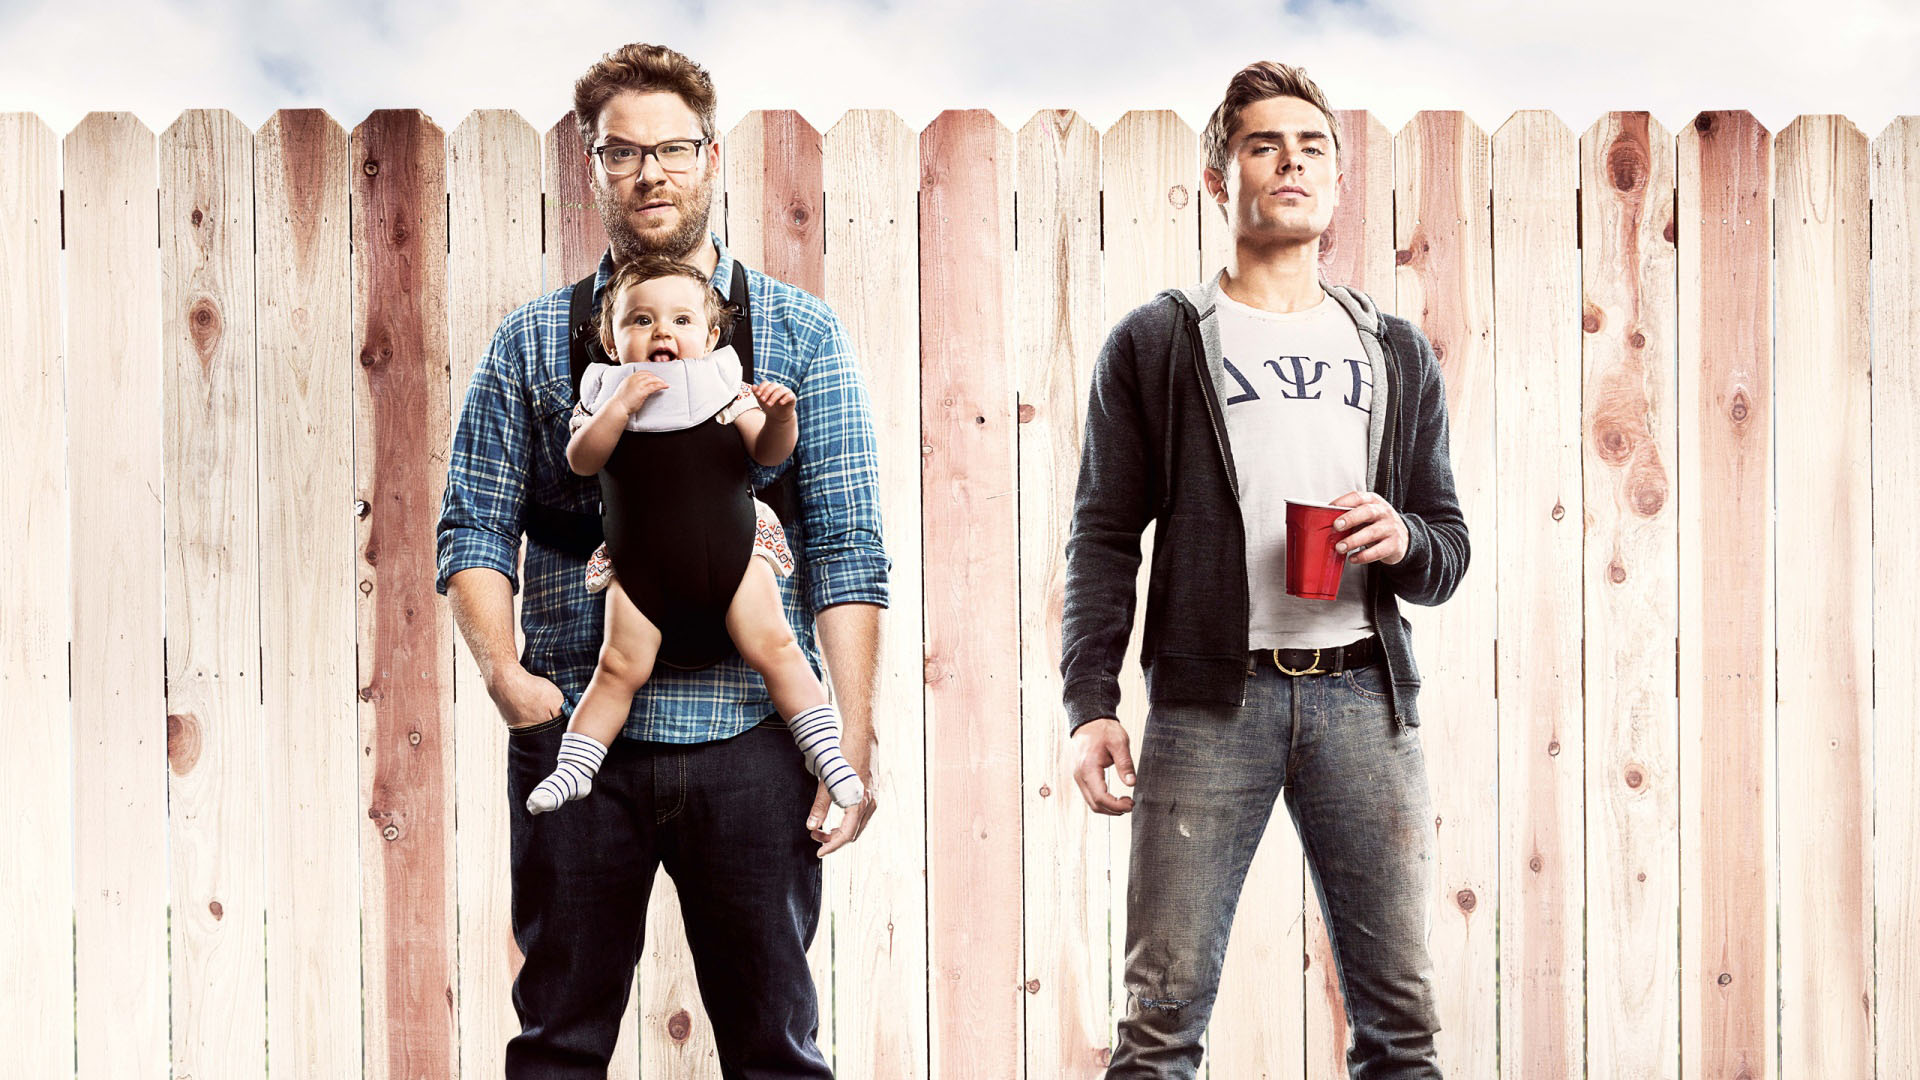 Neighbors wallpaper 1